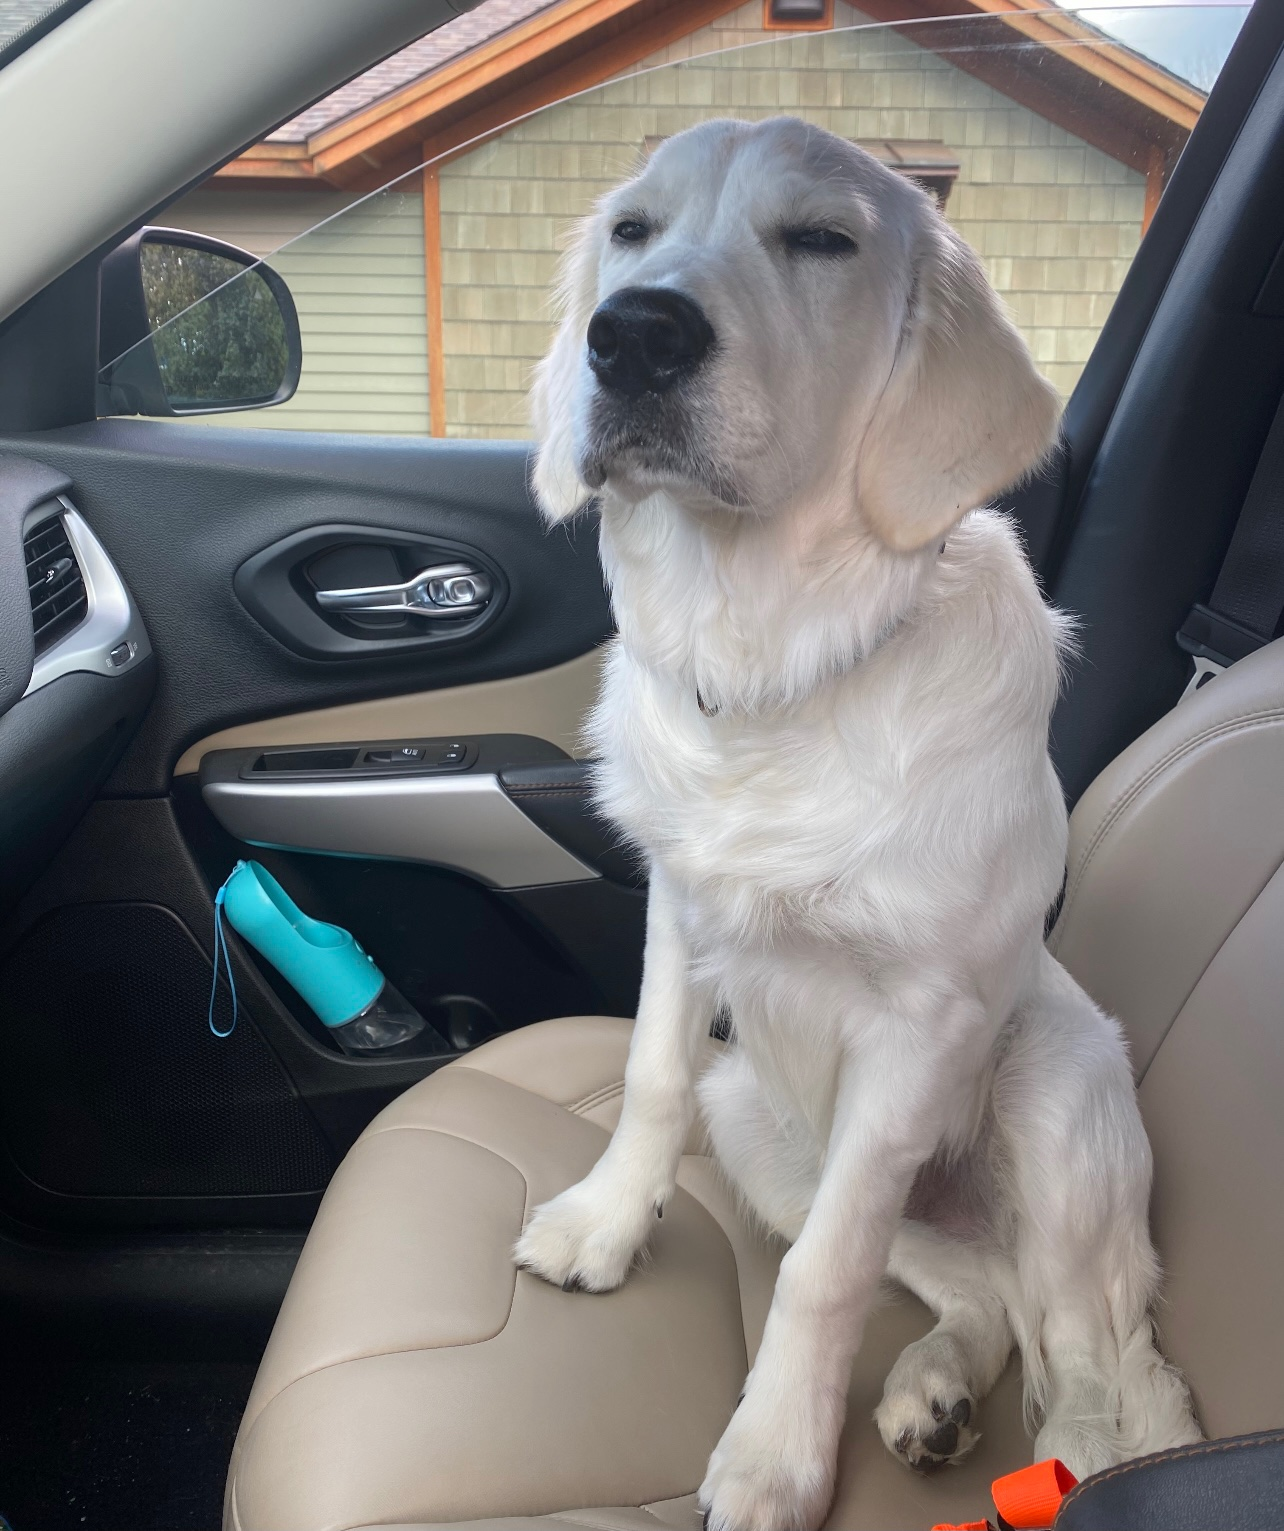 Bentley, SU sophomore Mandy Good's English golden retriever, sits in the passenger seat of a car.